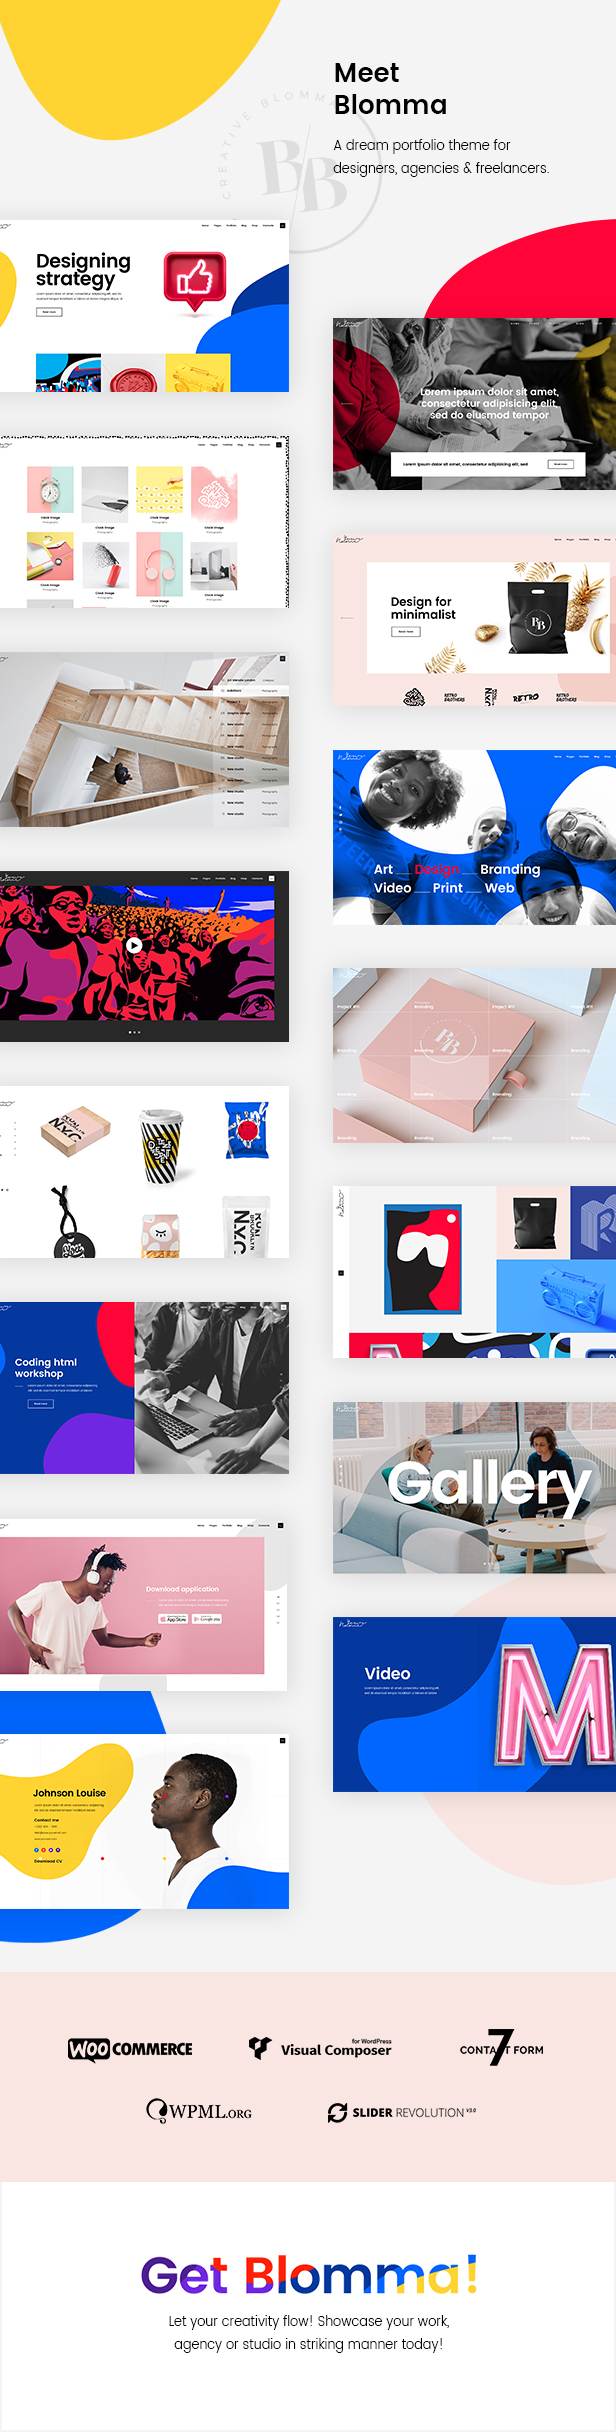 Blomma - Theme of the portfolio of the creative agency - 1